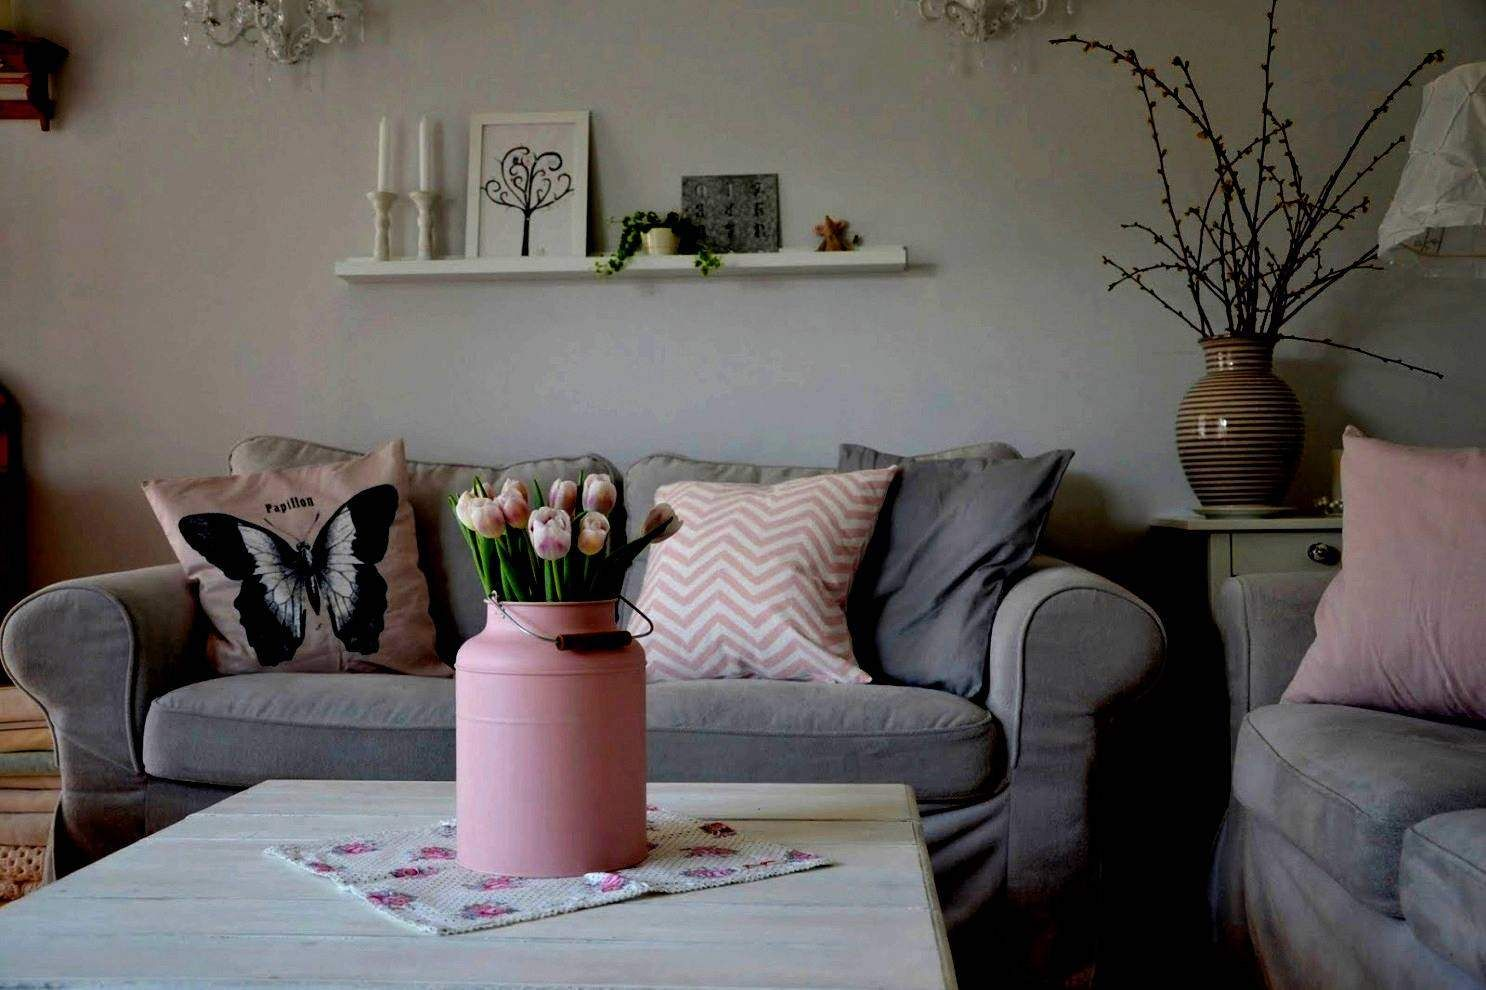 Wohnzimmer Deko Grau Rosa in 9  Home decor, Bedroom pillows, Home